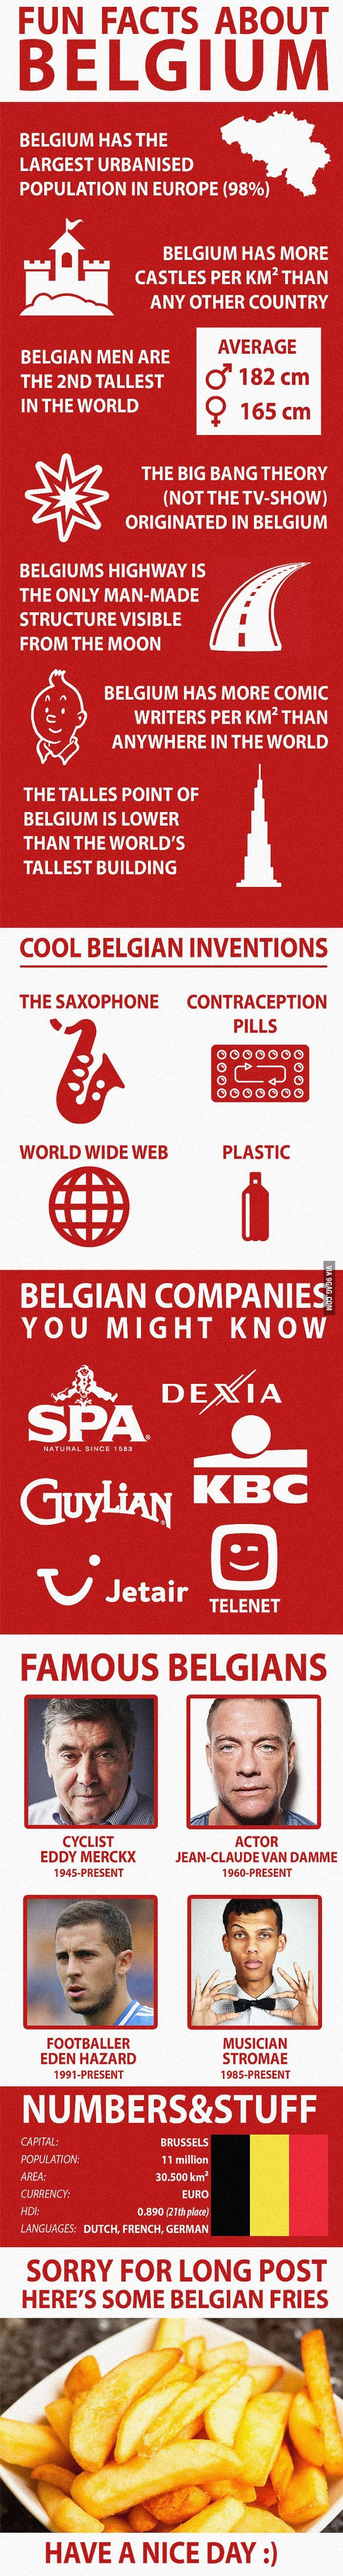 Fun Facts about Belgium - Tap the link to see the newly released collections for amazing beach bikinis! :D